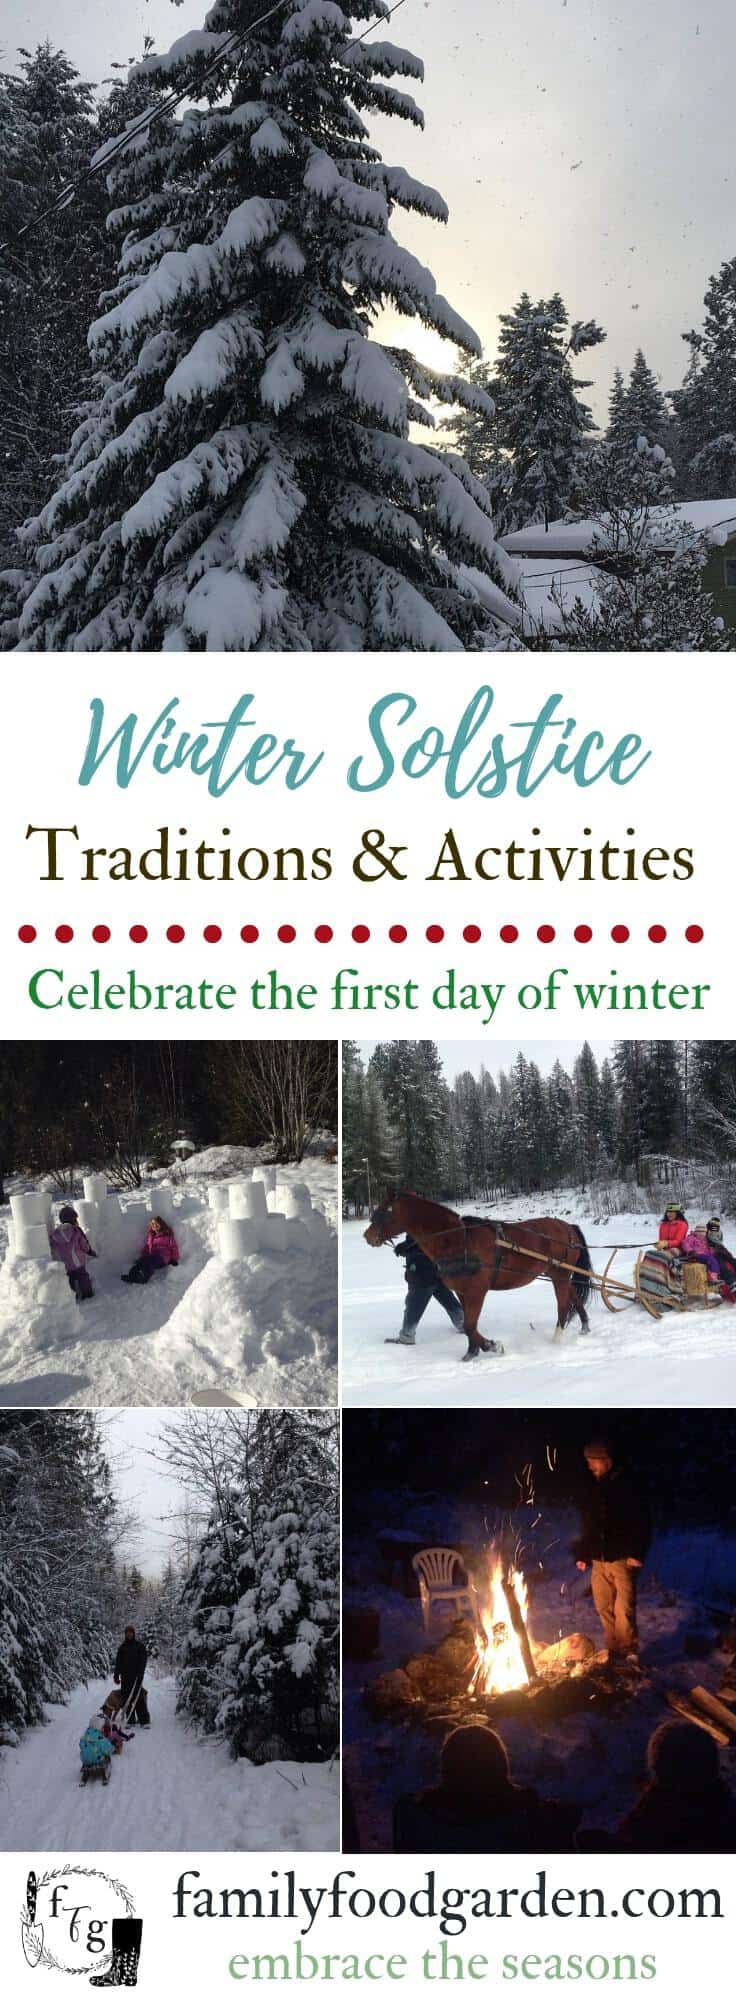 Winter Solstice Traditions to celebrate the first day of winter #wintersolstice #winter #winteractivities #holidays